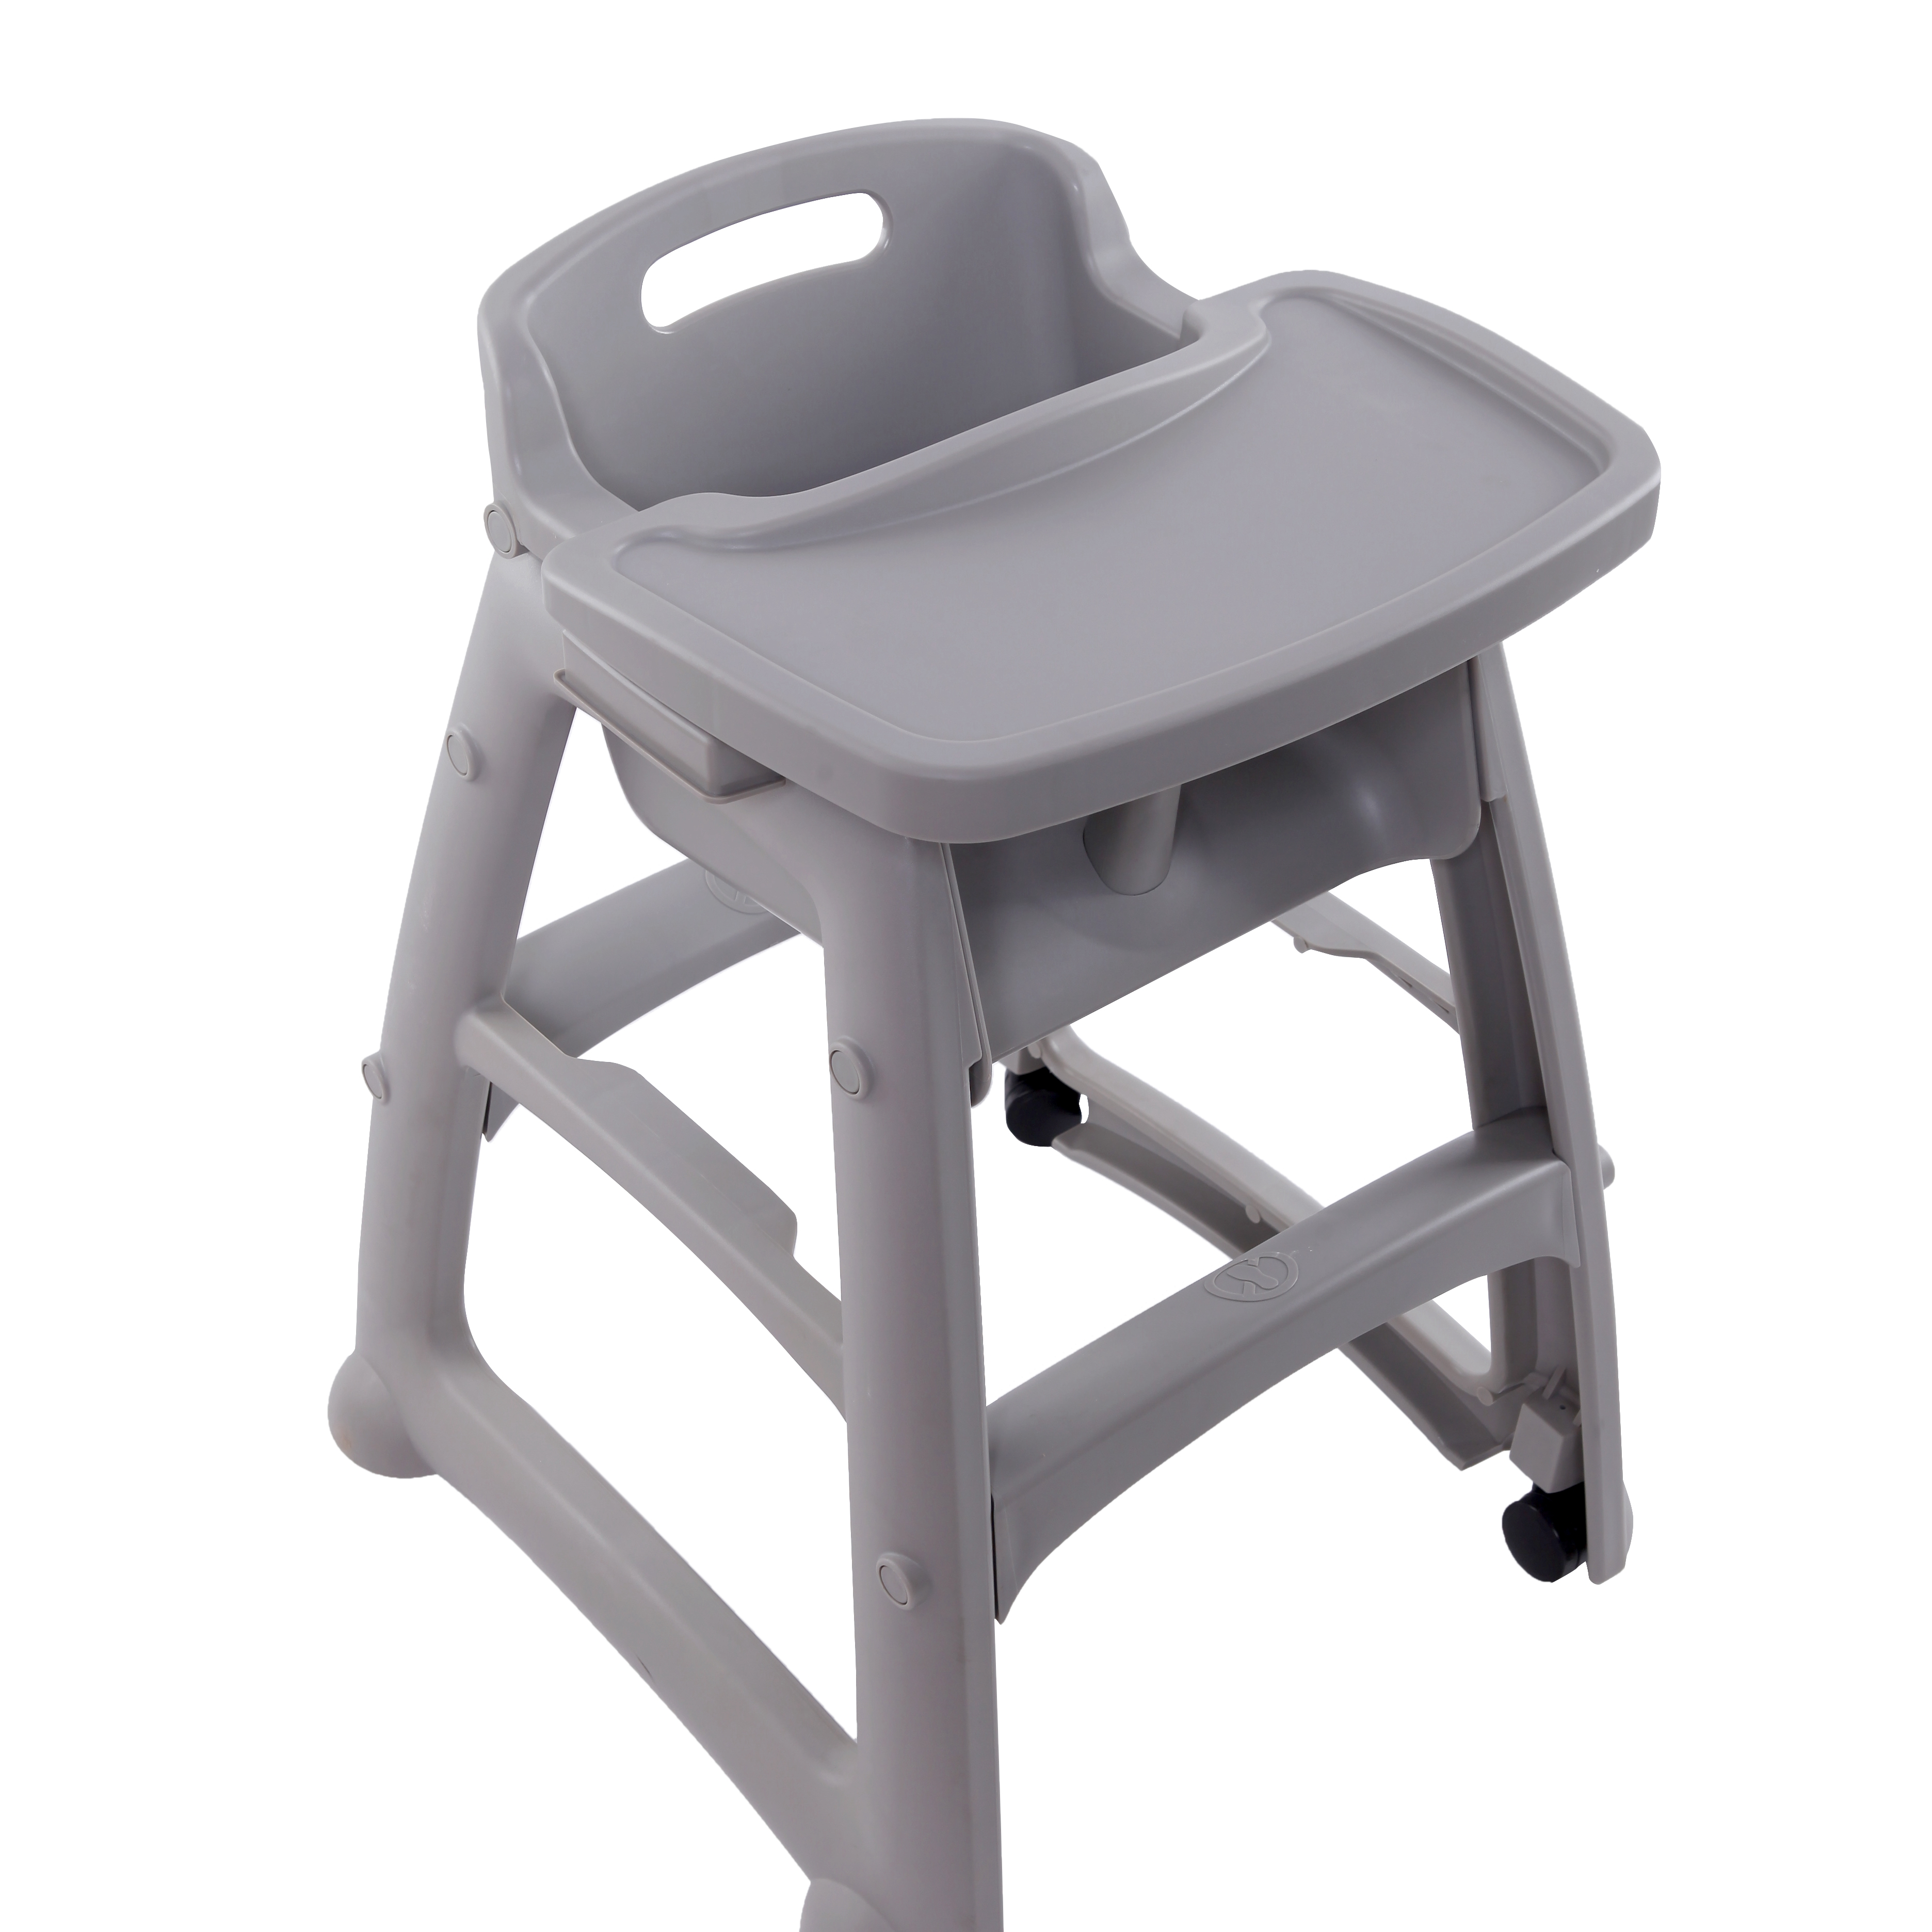 Booster High Chair Seat Inflatable Baby Booster High Chair Youth Seat With Wheels Buy Inflatable Baby Booster Seat Plastic Chair Seats Kitchen Chair Seats Product On